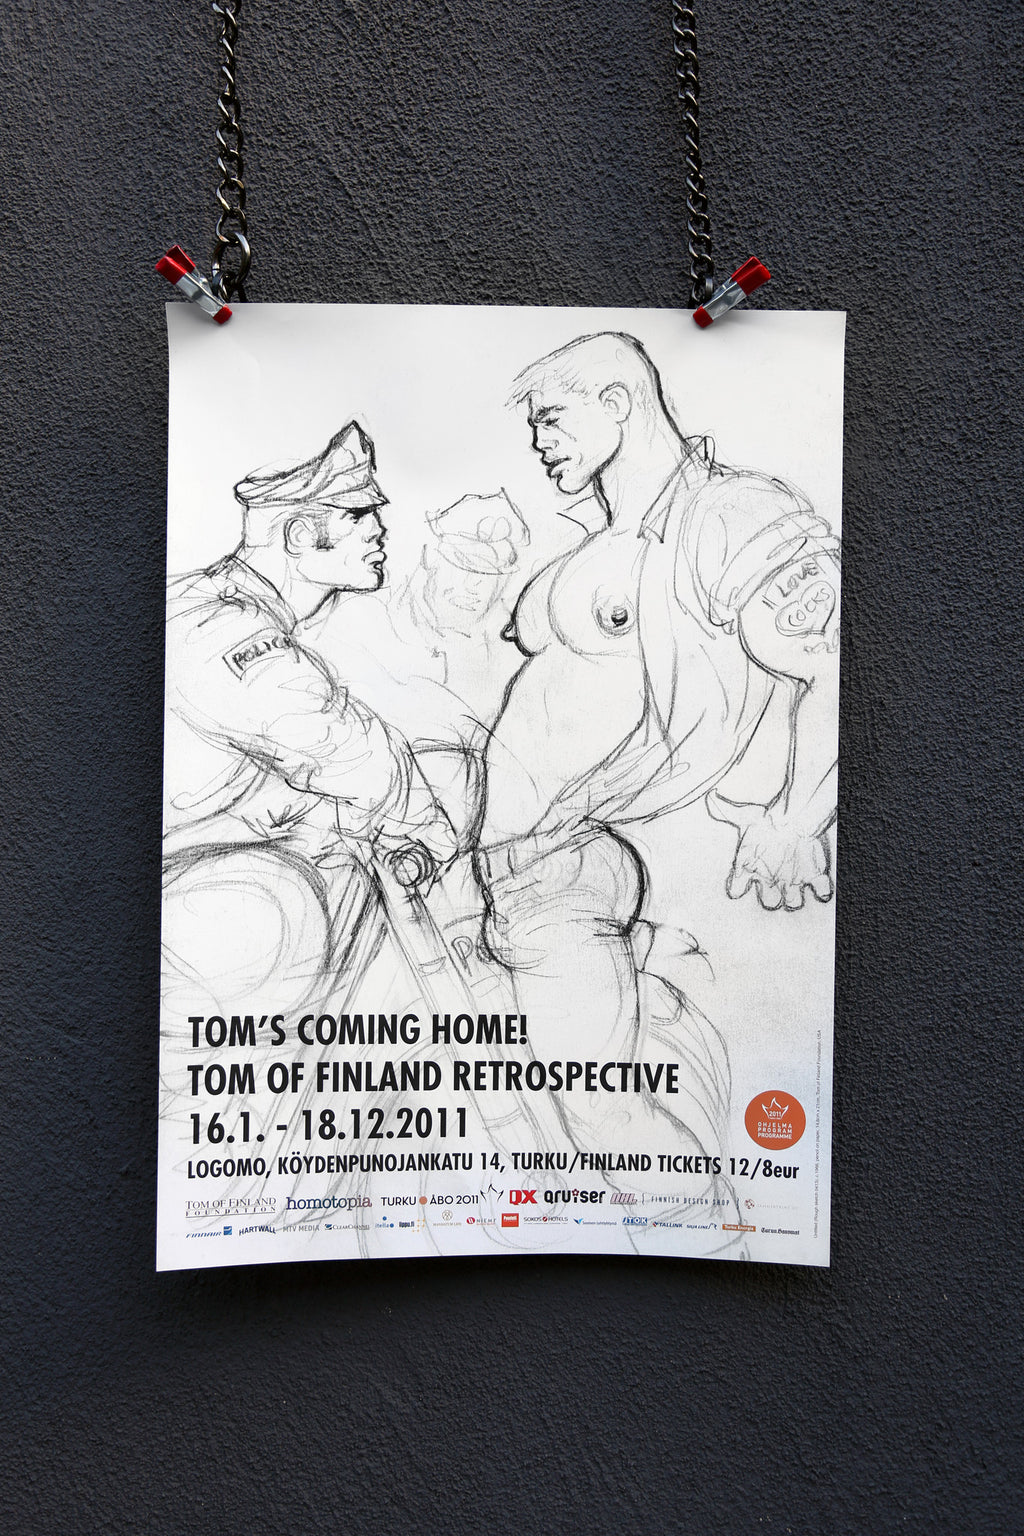 Vintage Tom's Coming Home Poster